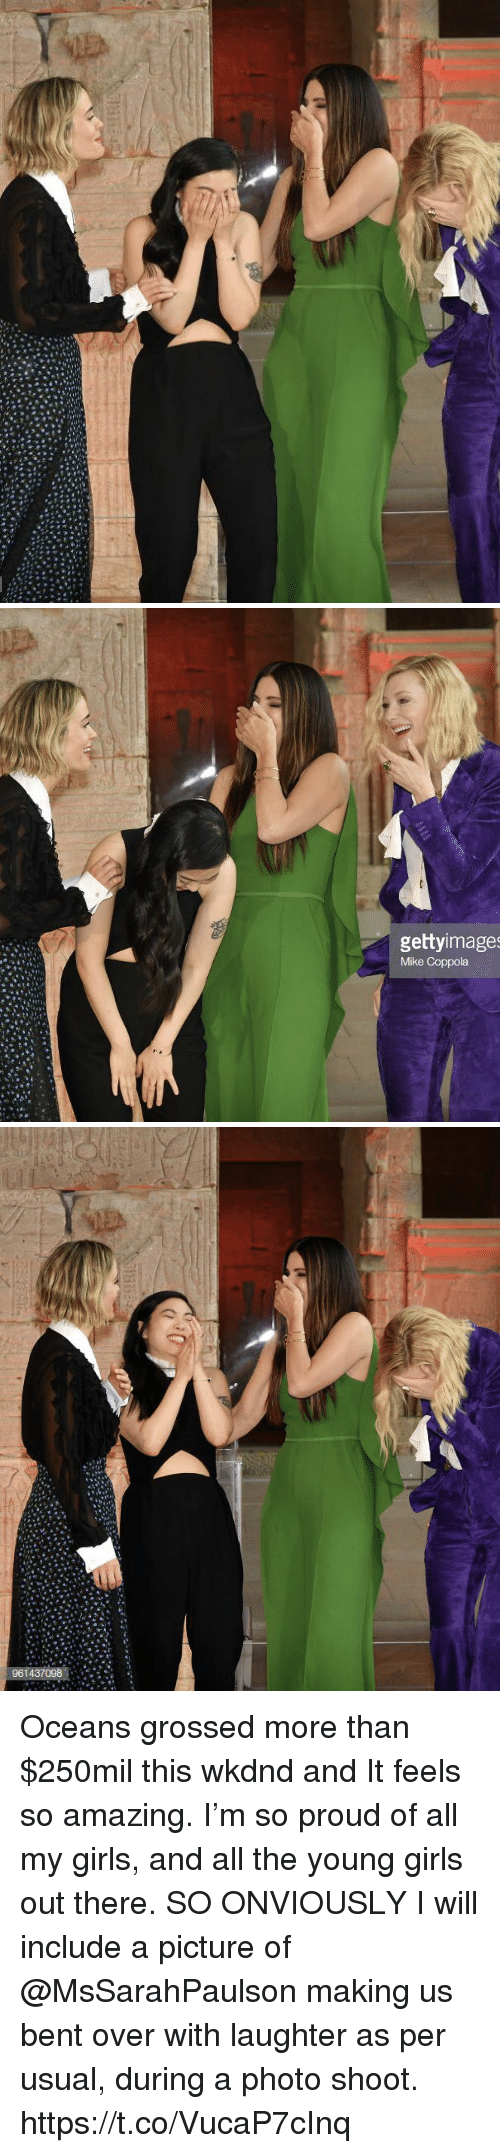 Girls, Memes, and Amazing: gettyimage  Mike Coppola Oceans grossed more than $250mil this wkdnd and It feels so amazing. I'm so proud of all my girls, and all the young girls out there.   SO ONVIOUSLY I will include a picture of @MsSarahPaulson making us bent over with laughter as per usual, during a photo shoot. https://t.co/VucaP7cInq